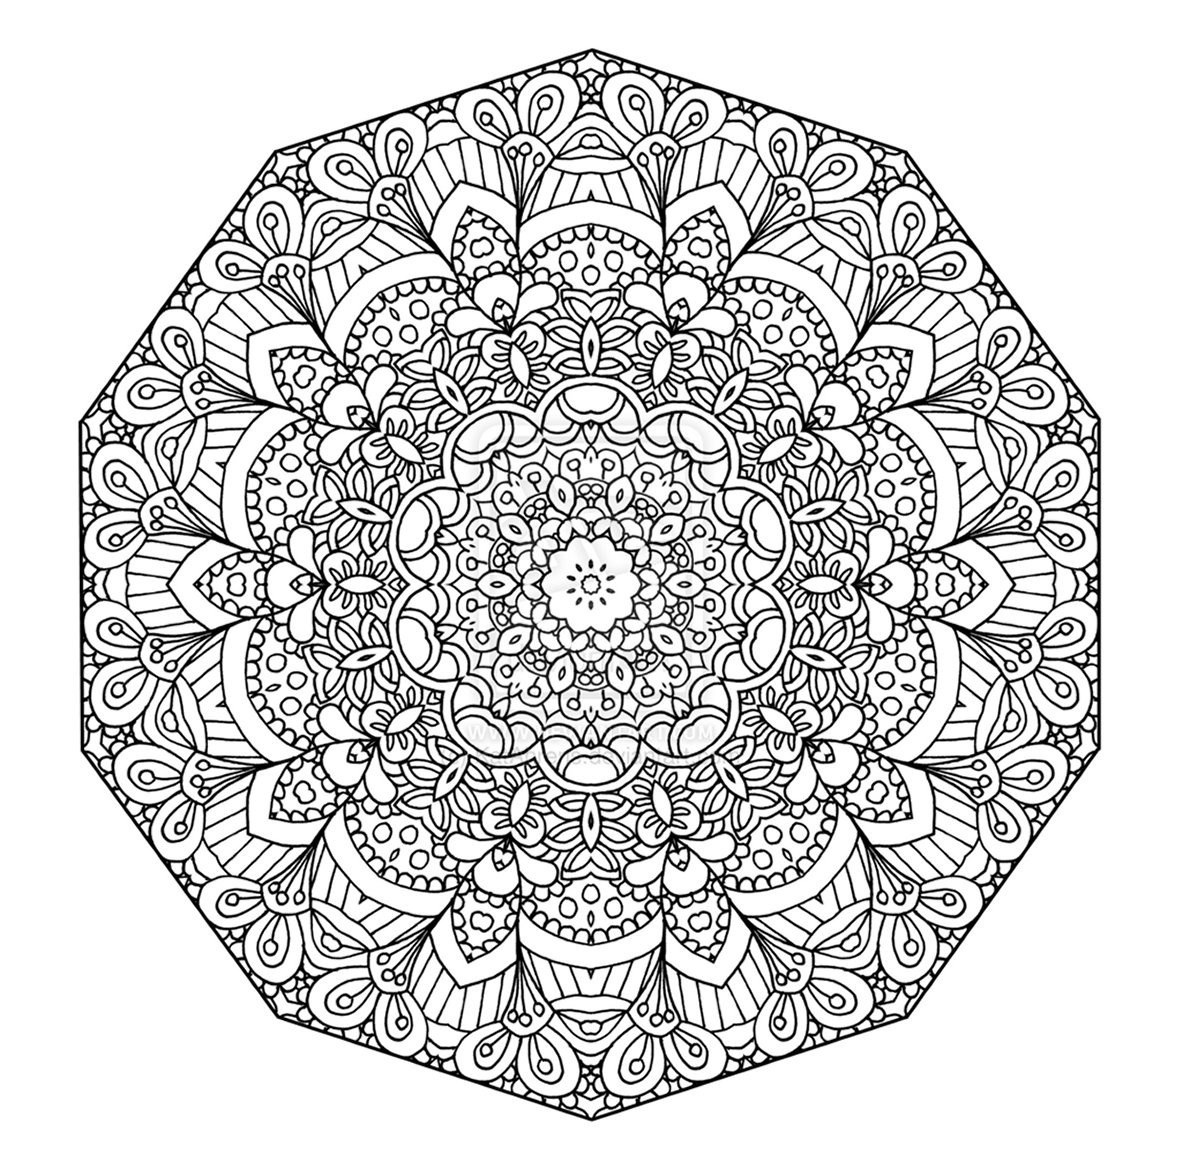 1182x1169 Complex Mandala Coloring Pages Printable Classbeachhotel